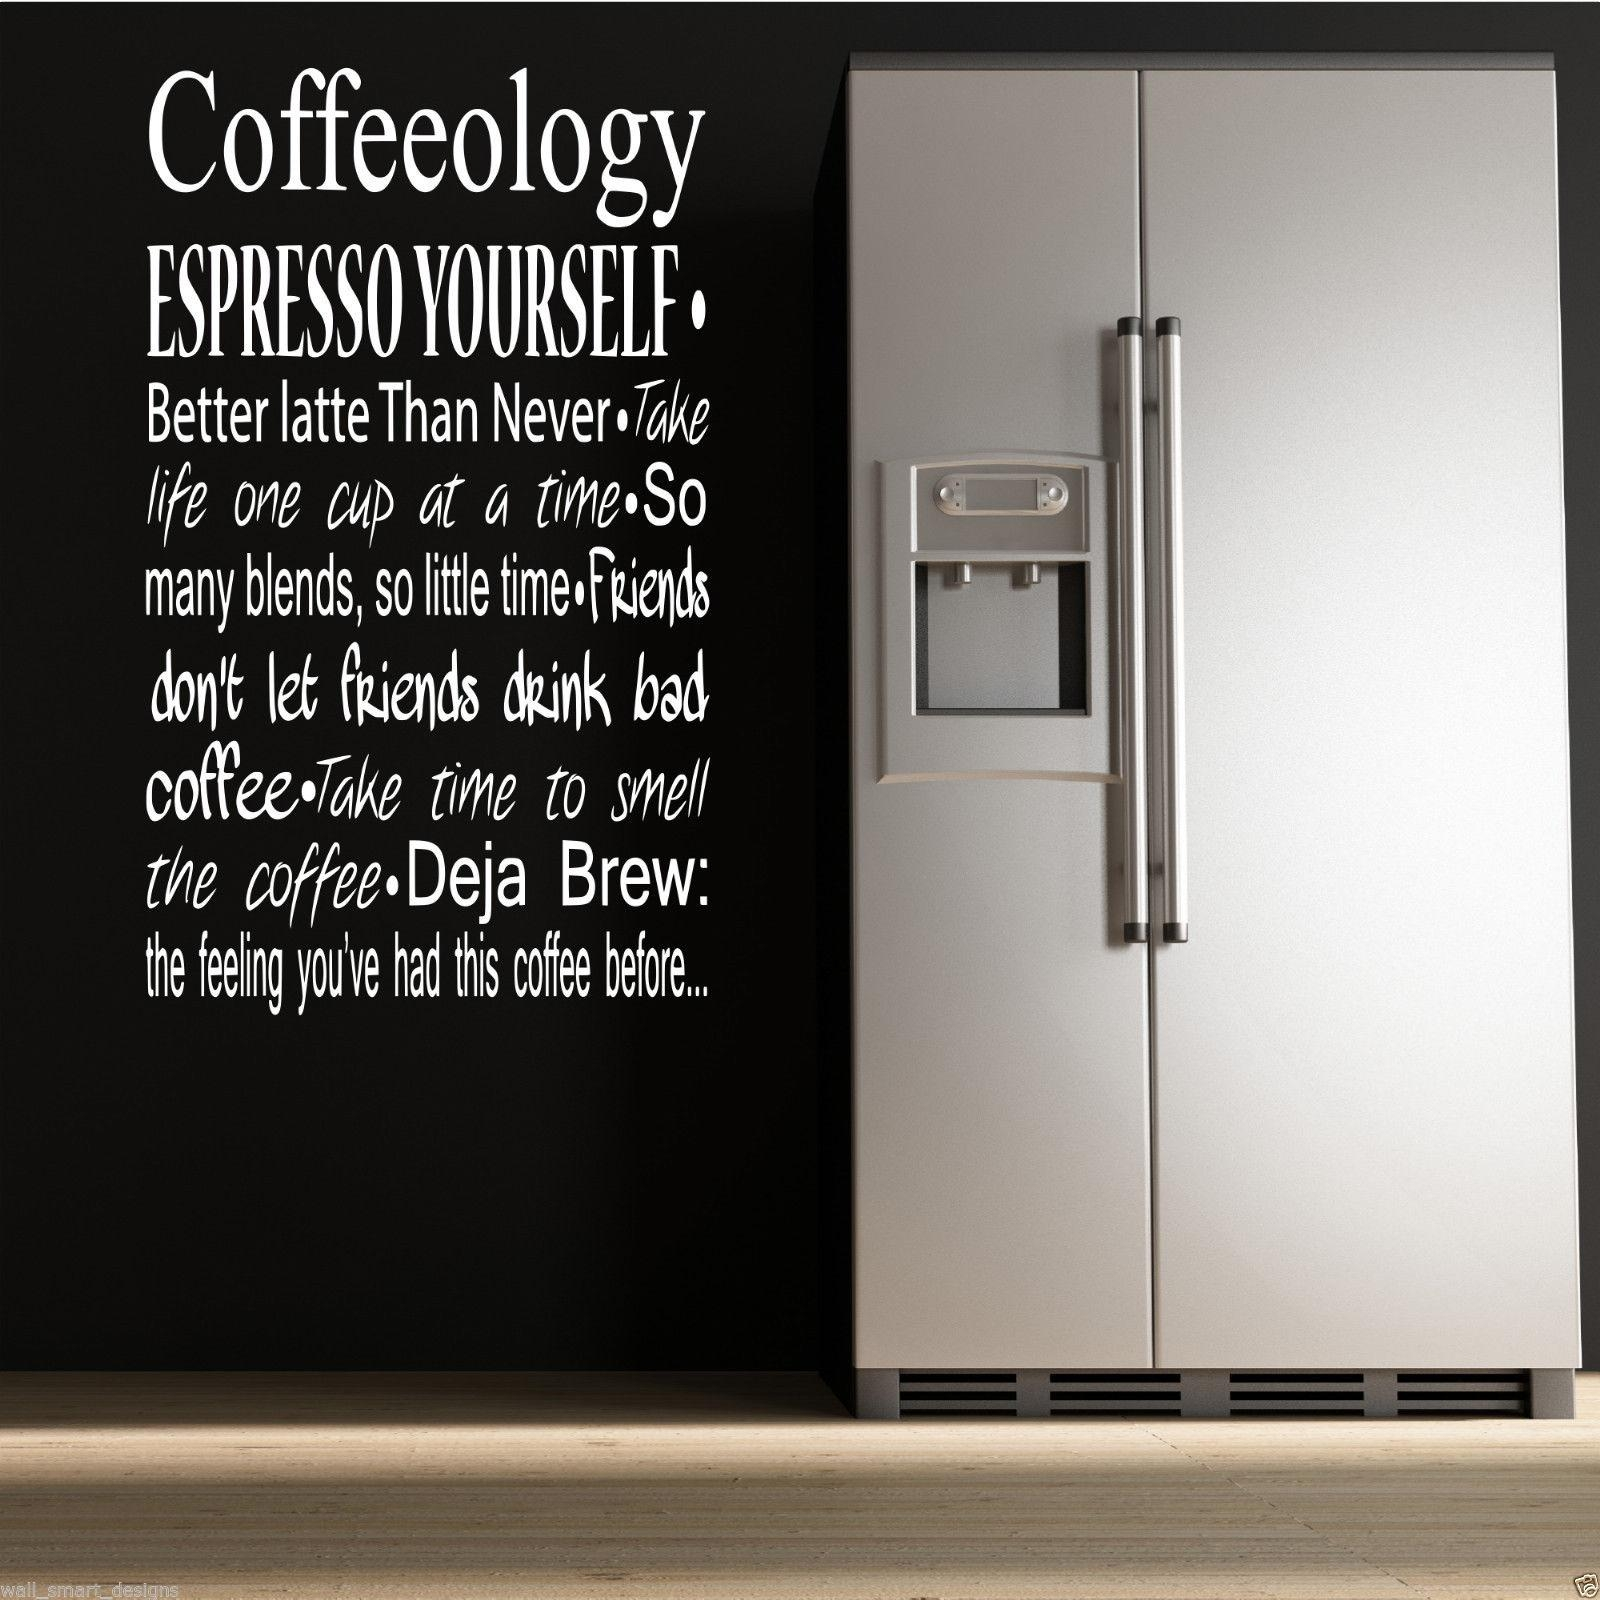 Coffee Coffeeology Kitchen Wall Art Sticker Quote Decal Mural With Regard To Cafe Latte Kitchen Wall Art (View 7 of 20)